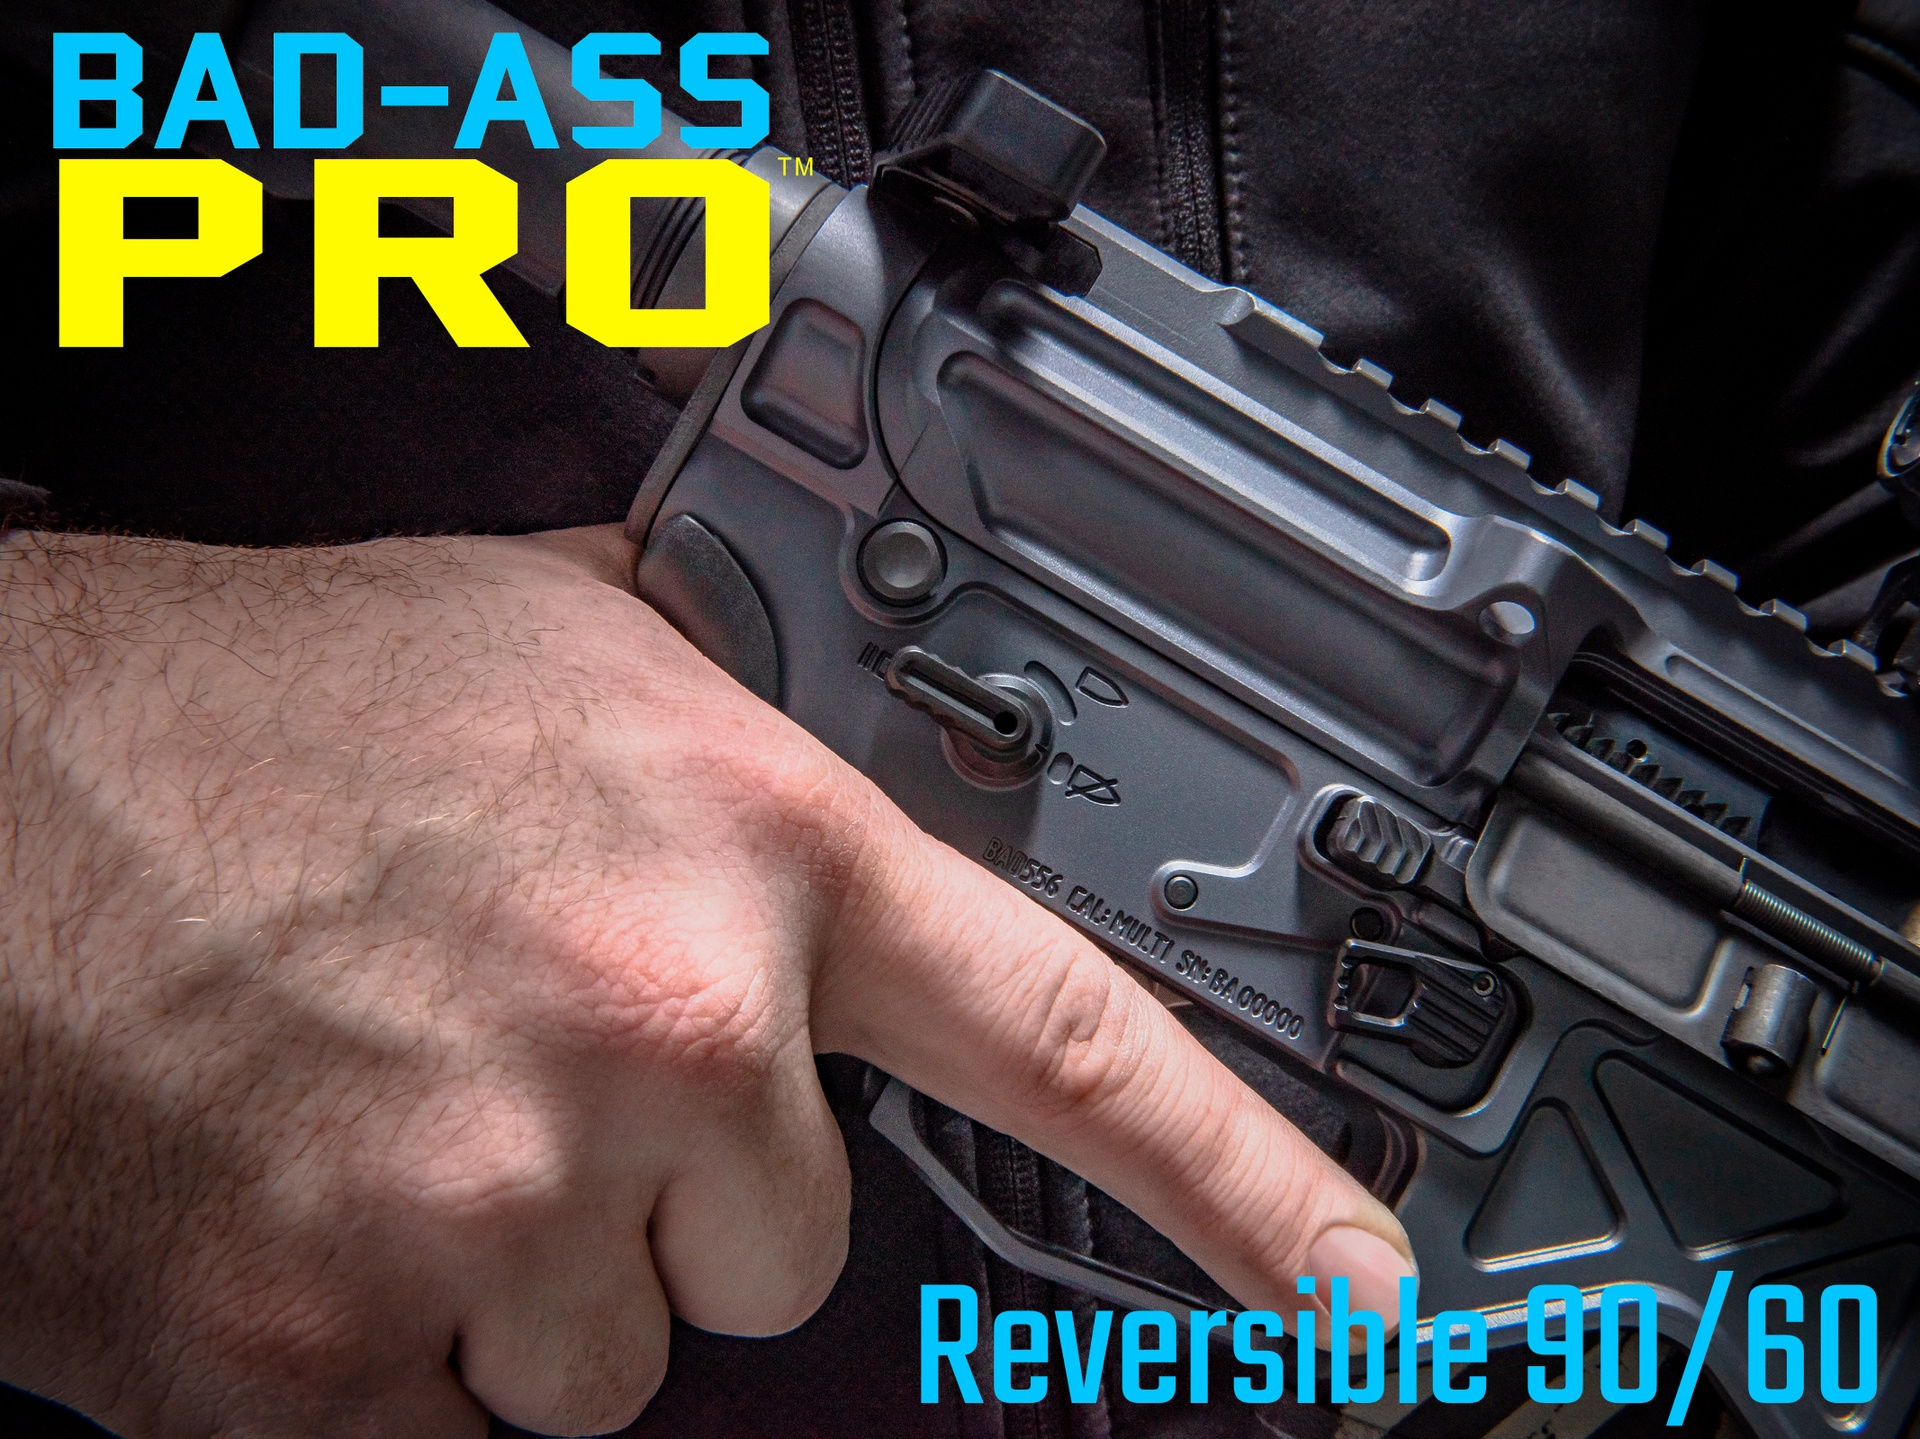 BAD-ASS-PRO Reversible 90/60 Ambidextrous Safety Selector